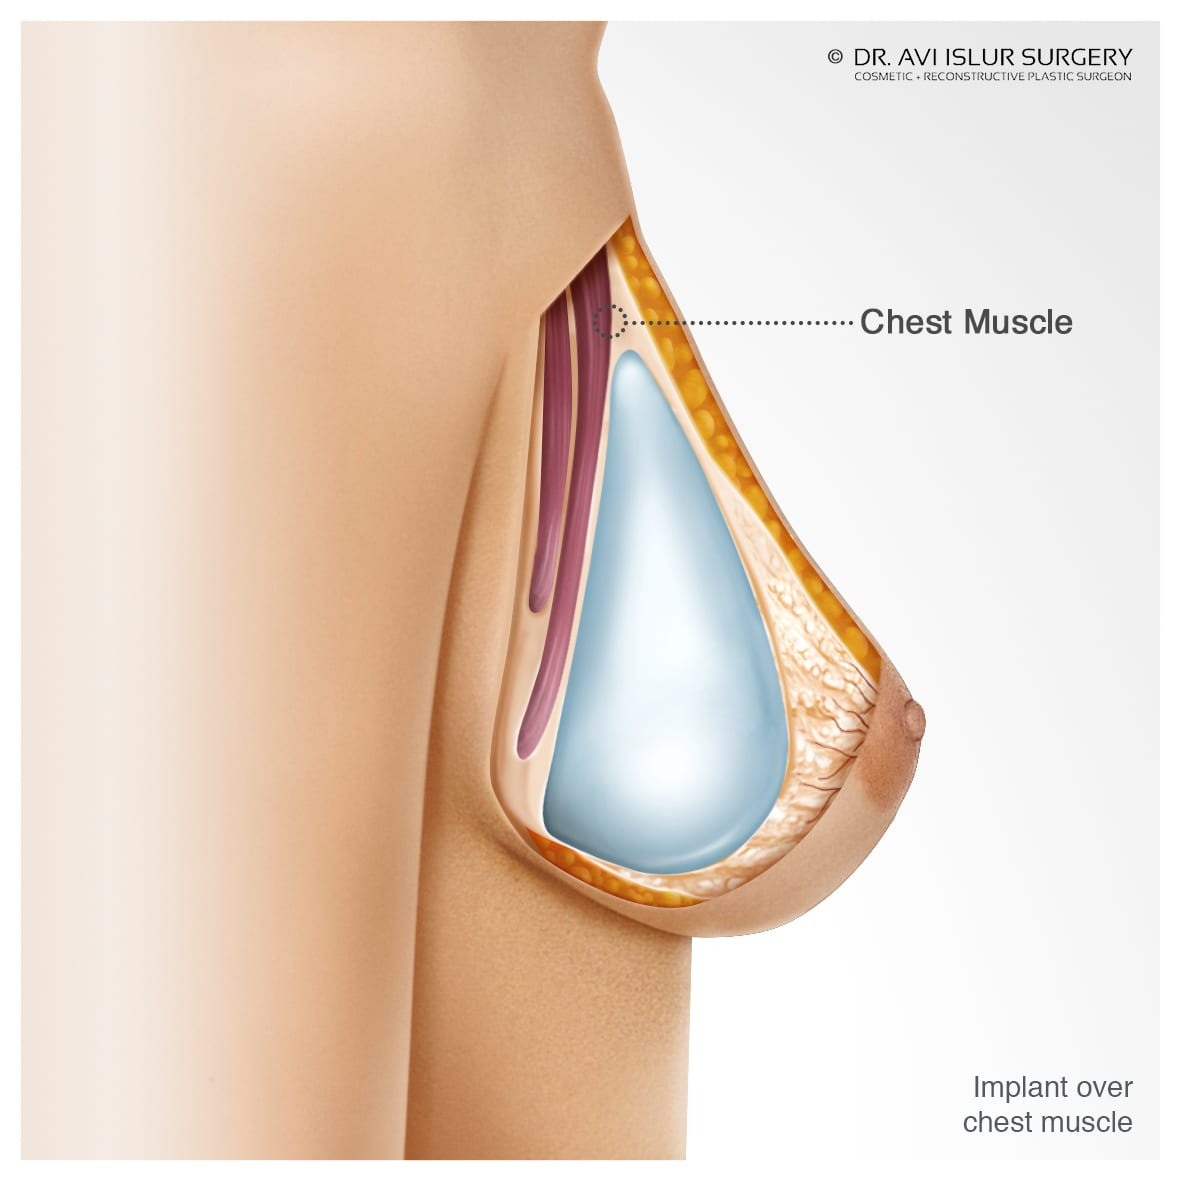 Illustration for Breast Implant Over the Chest Muscle